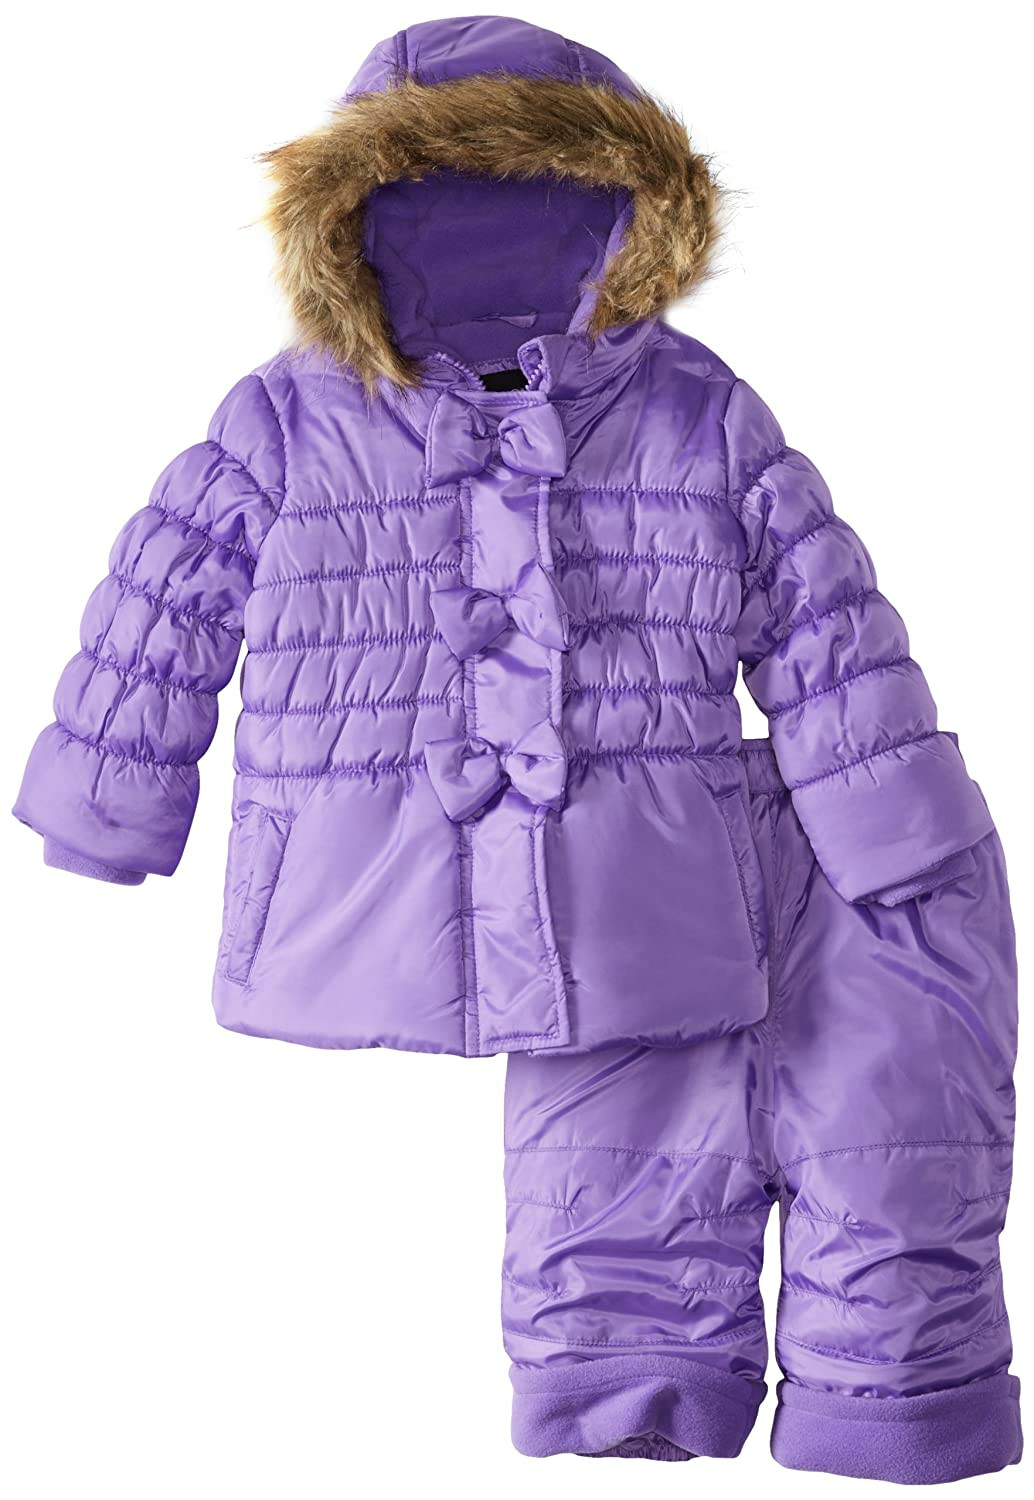 801fb4c919a2 Rothschild Baby Girls  Peplum Bubble Snowsuit with Bow Trim